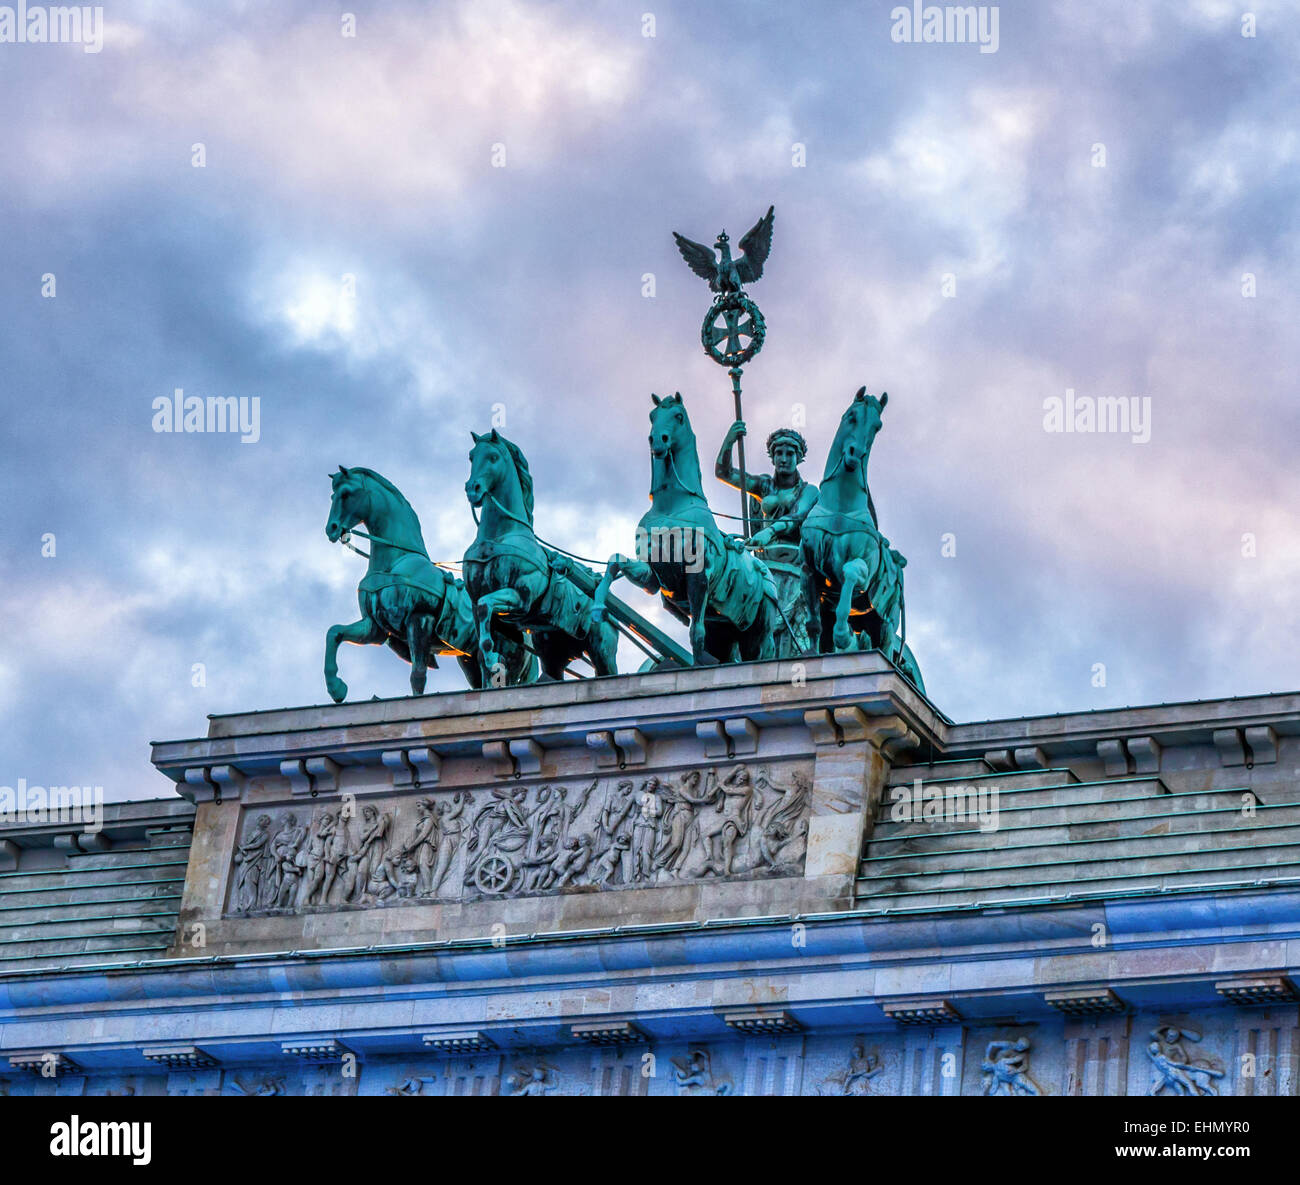 Berlin Brandenburg Gate, Brandenburger Tor. Peace Sculpture chariot and Goddess tops 18th Century neoclassical triumphal - Stock Image